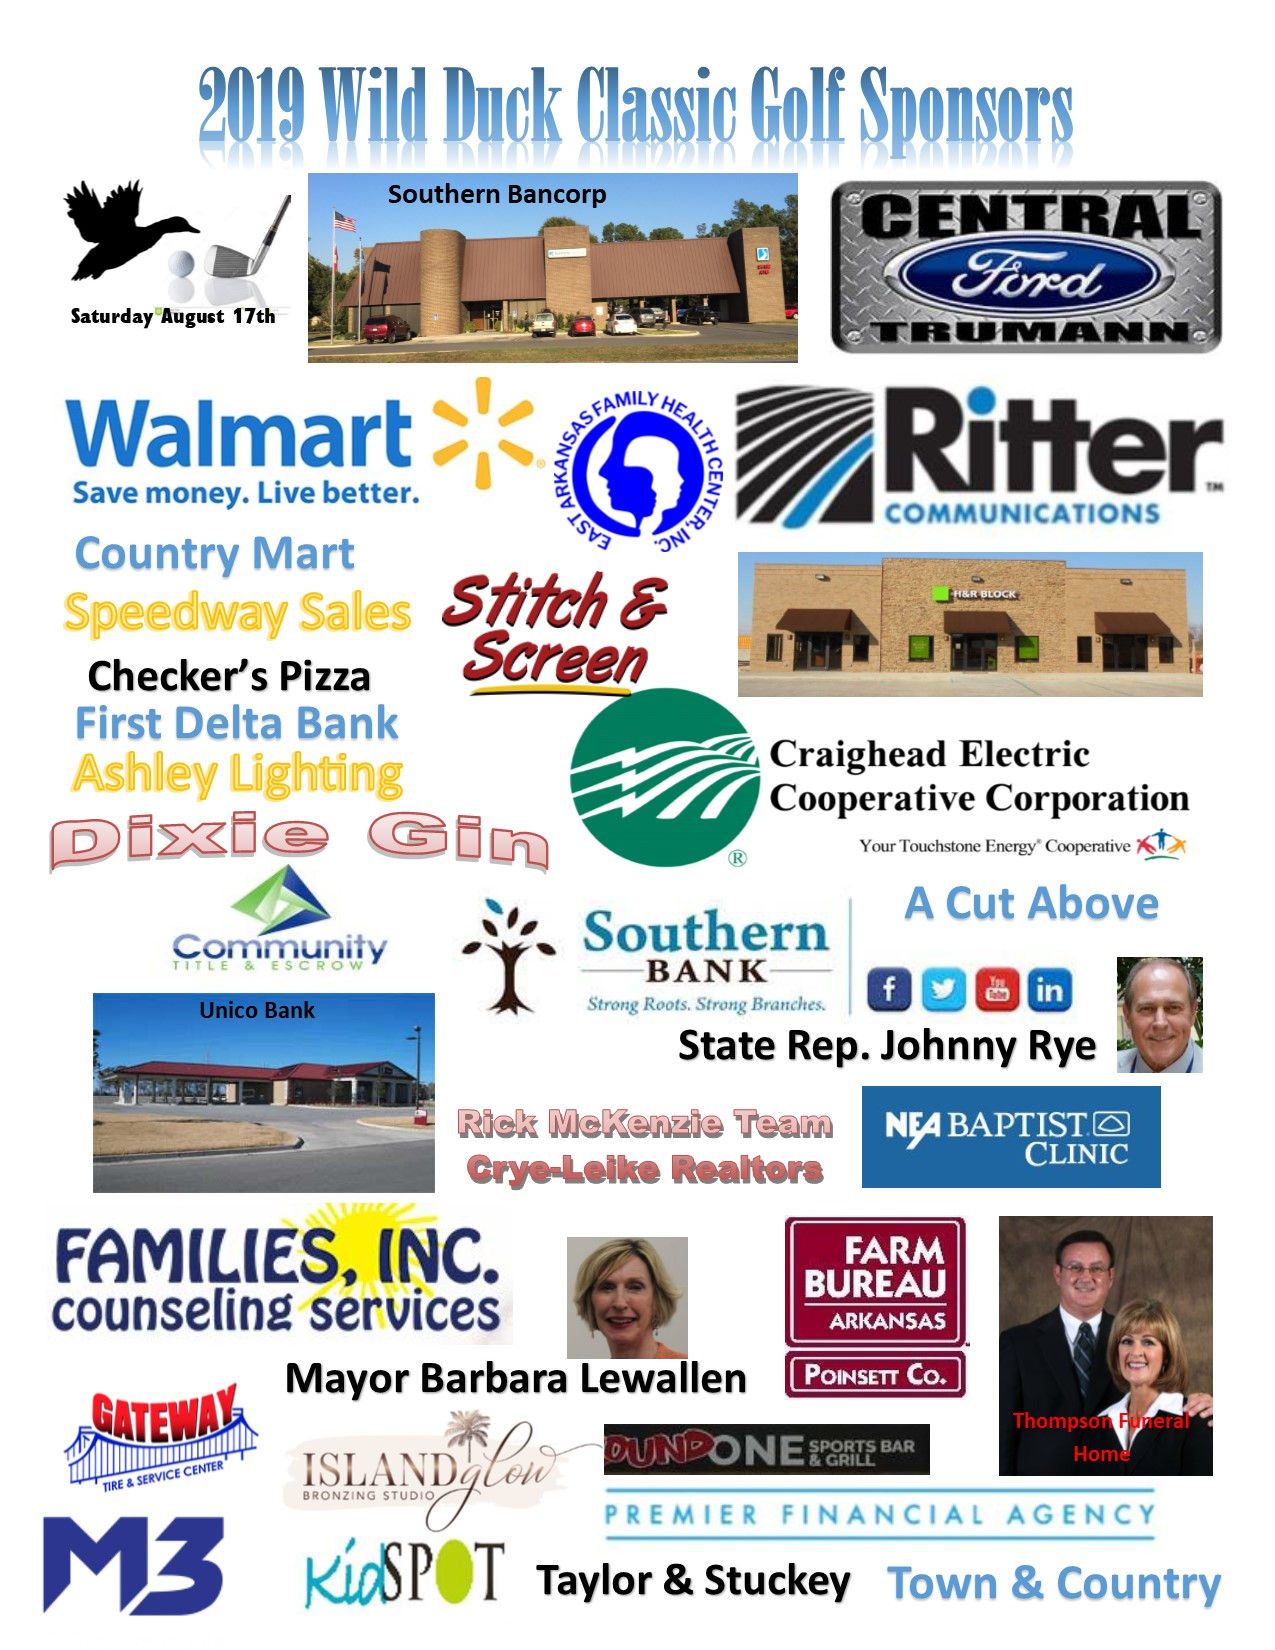 2019 Sponsors of the Wild Duck Classic Golf Tournament